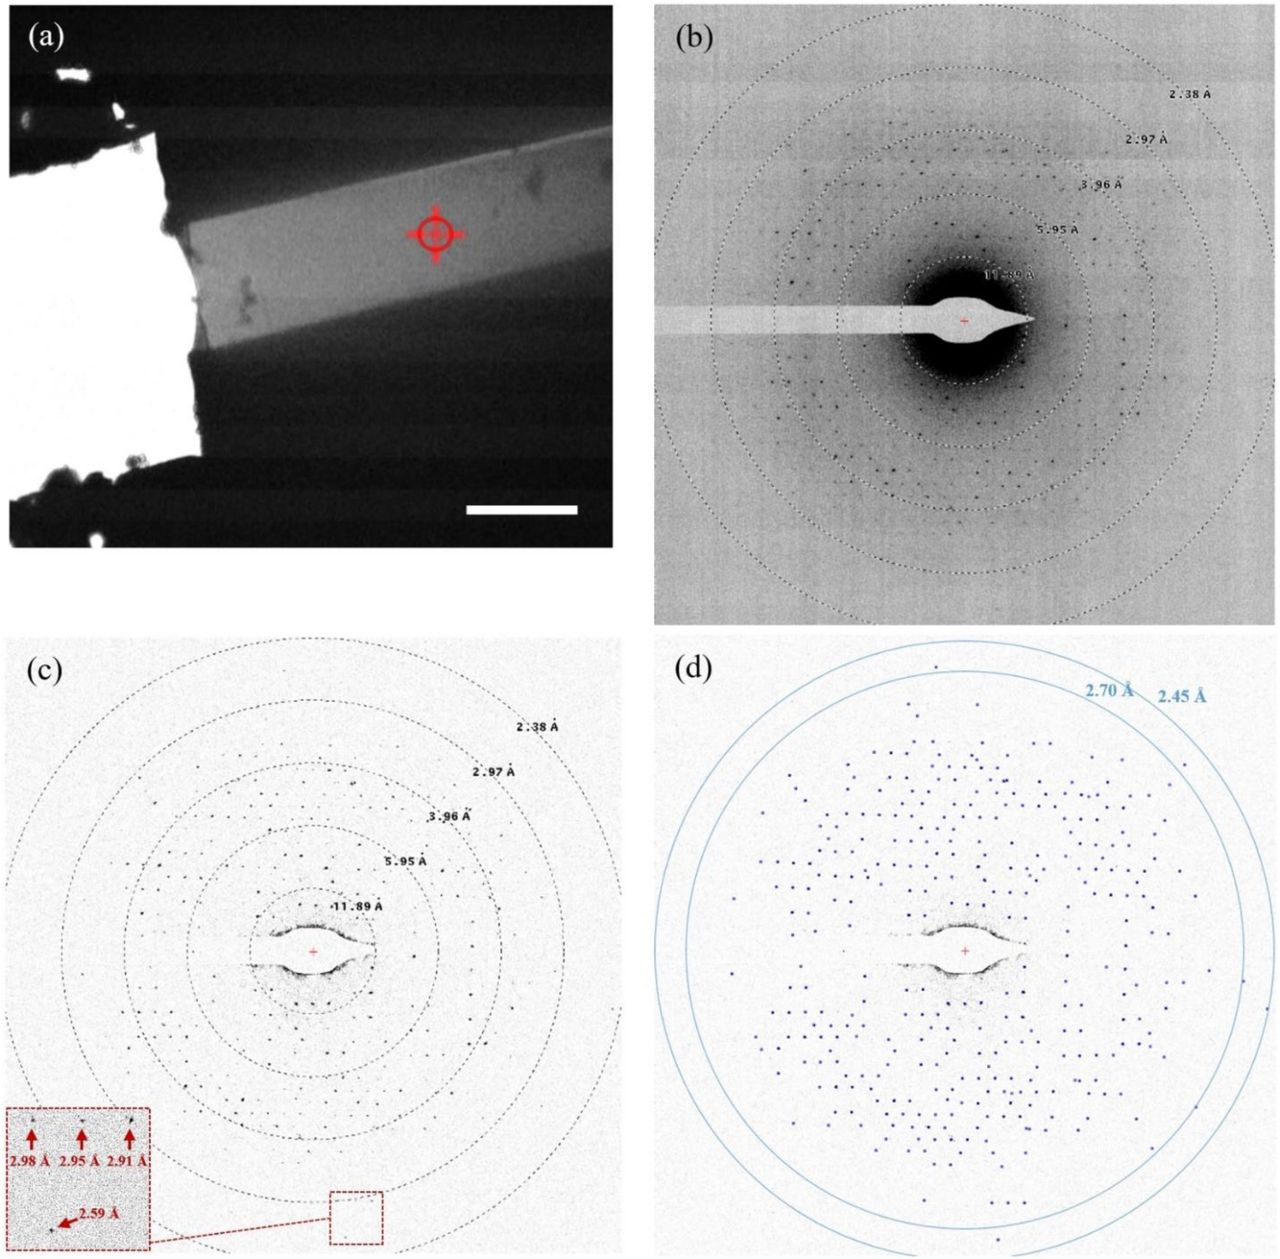 Electron diffraction experiment on a 210 nm thick lamella of bacteriorhodopsin, using a 200-kV cryo-TEM microscope. (a) TEM micrograph of the FIB-machined lamella of the BR crystal. Electron diffraction signal was collected from a 1.4-µm area of the lamella, indicated by a red circle with a cross. The scale bar on (a) corresponds to 5 µm. (b) The 200-kV electron diffraction pattern obtained from the area indicated in (a). (c) The electron diffraction image is corrected by subtraction of local moving-average background, calculated with the Adxv program ( Adxv, 2013 ). The inset shows a close up of the electron diffraction pattern. (d) Diffraction peaks were automatically picked up by the Adxv software, and the diffraction peaks in the resolution shell of 2.7 Å - 2.45 Å had a mean signal-to-noise ratio